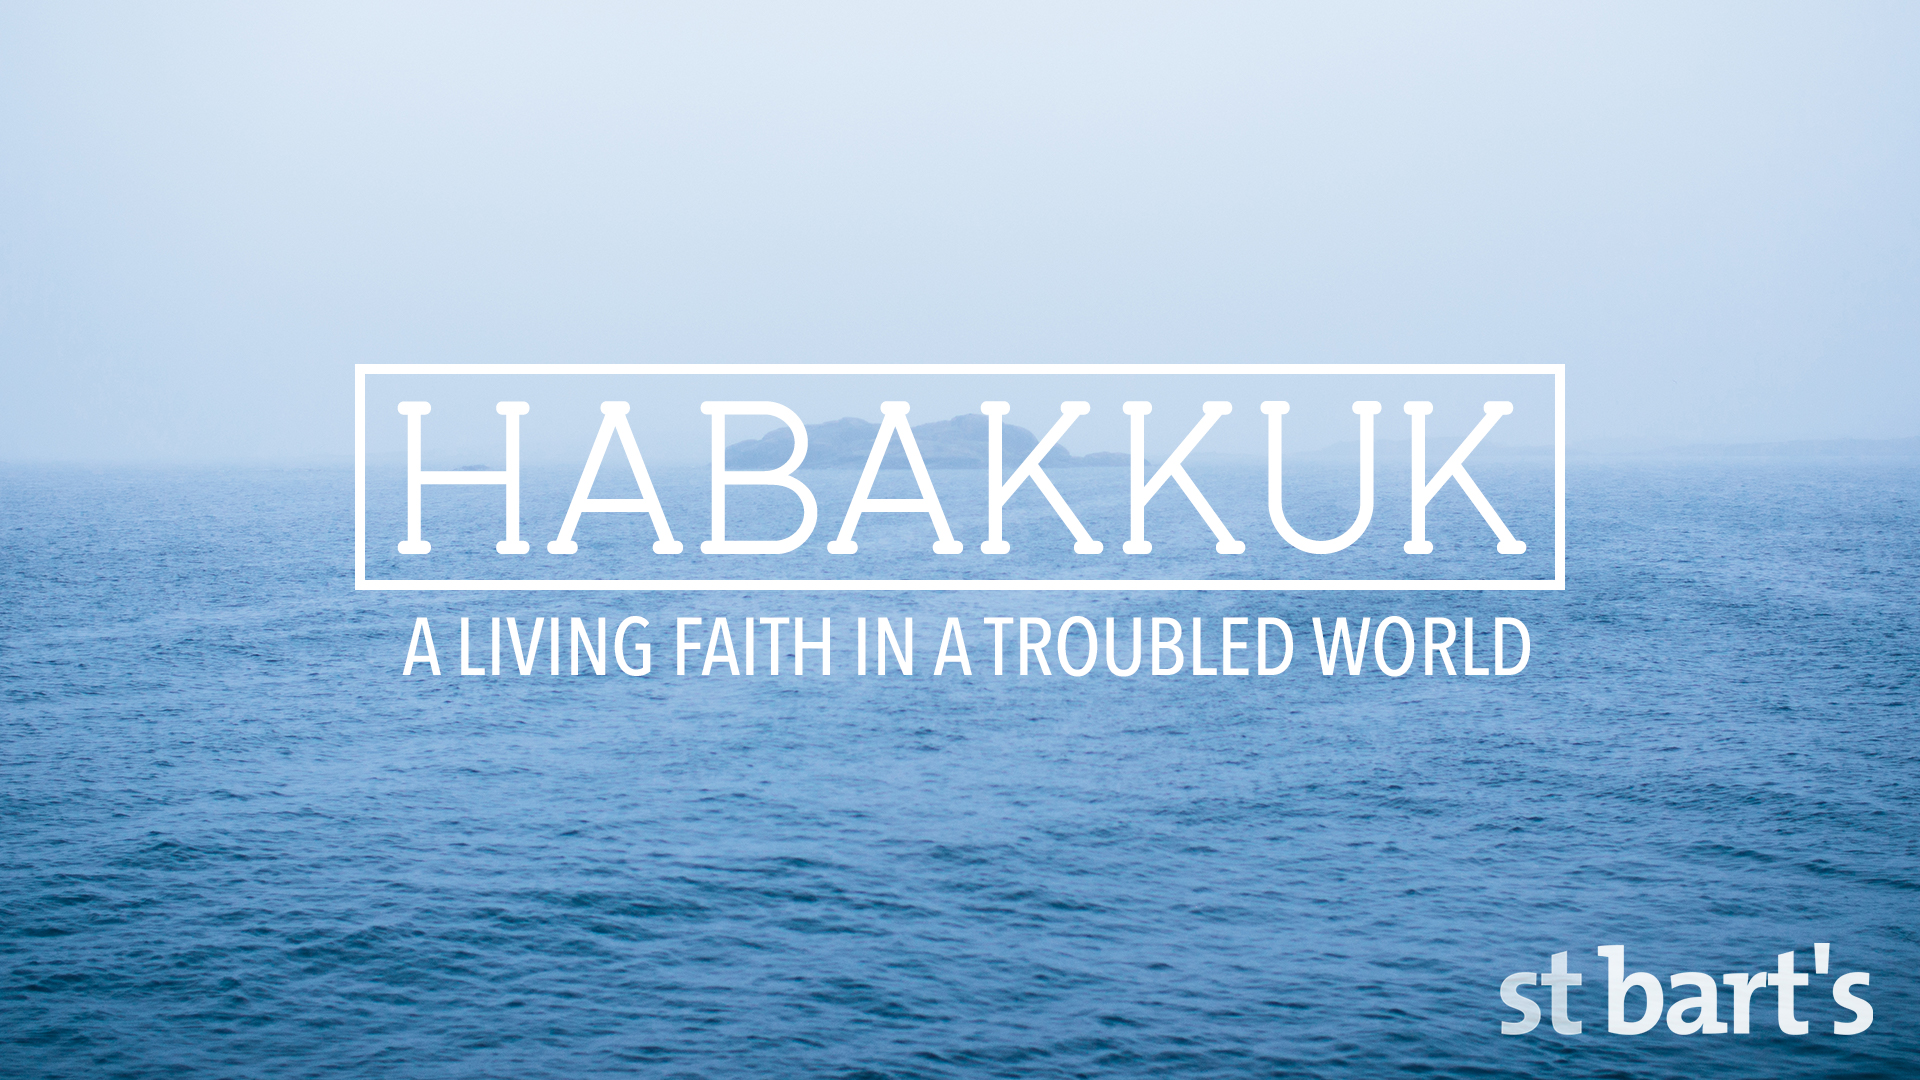 Habakkuk: Living Faith in a Troubled World